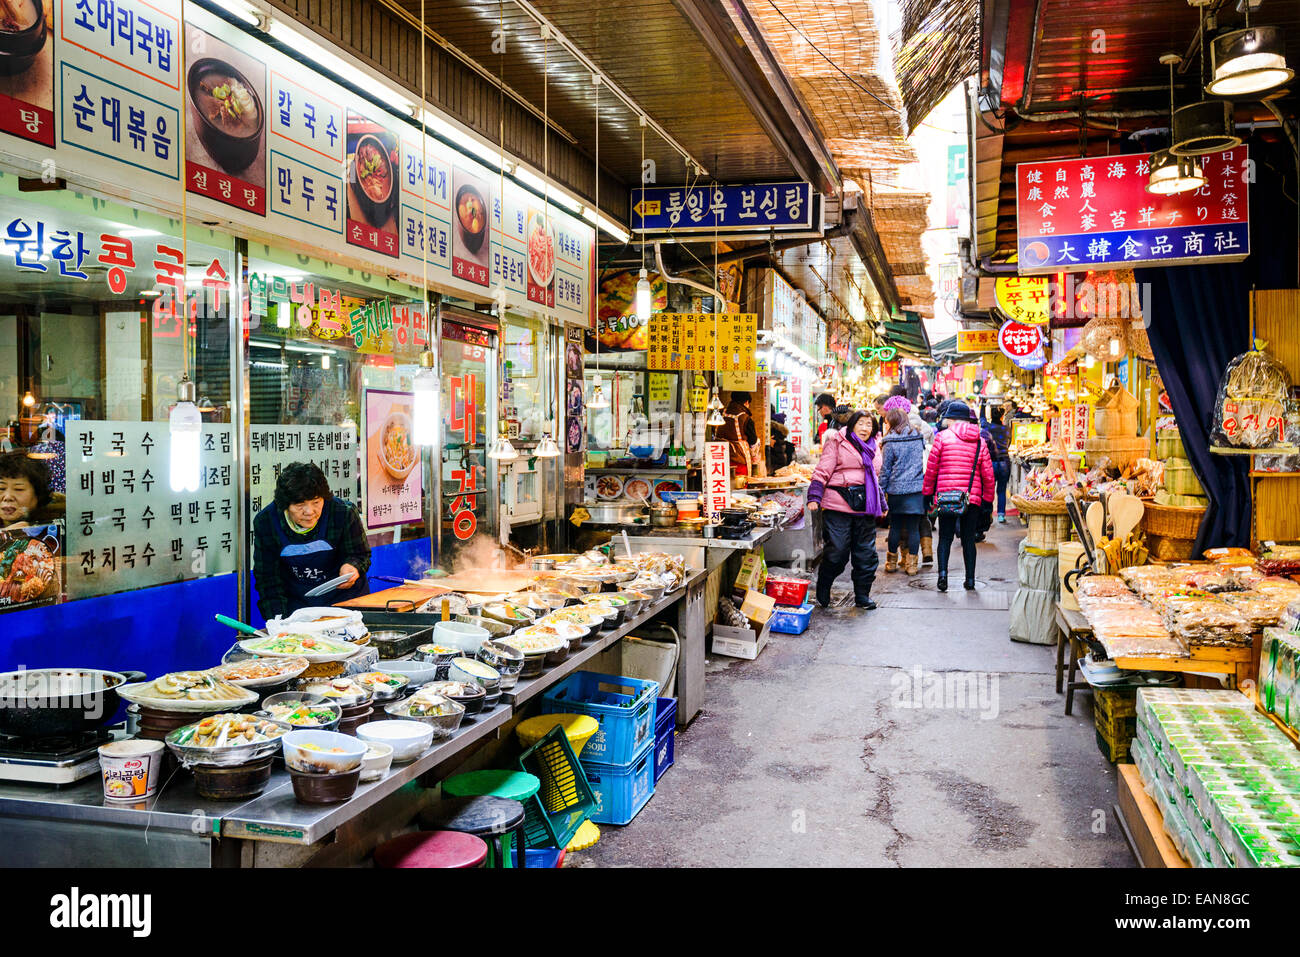 Shoppers pass through Dongdaemun Market. The market is a popular shopping and tourist destination. - Stock Image